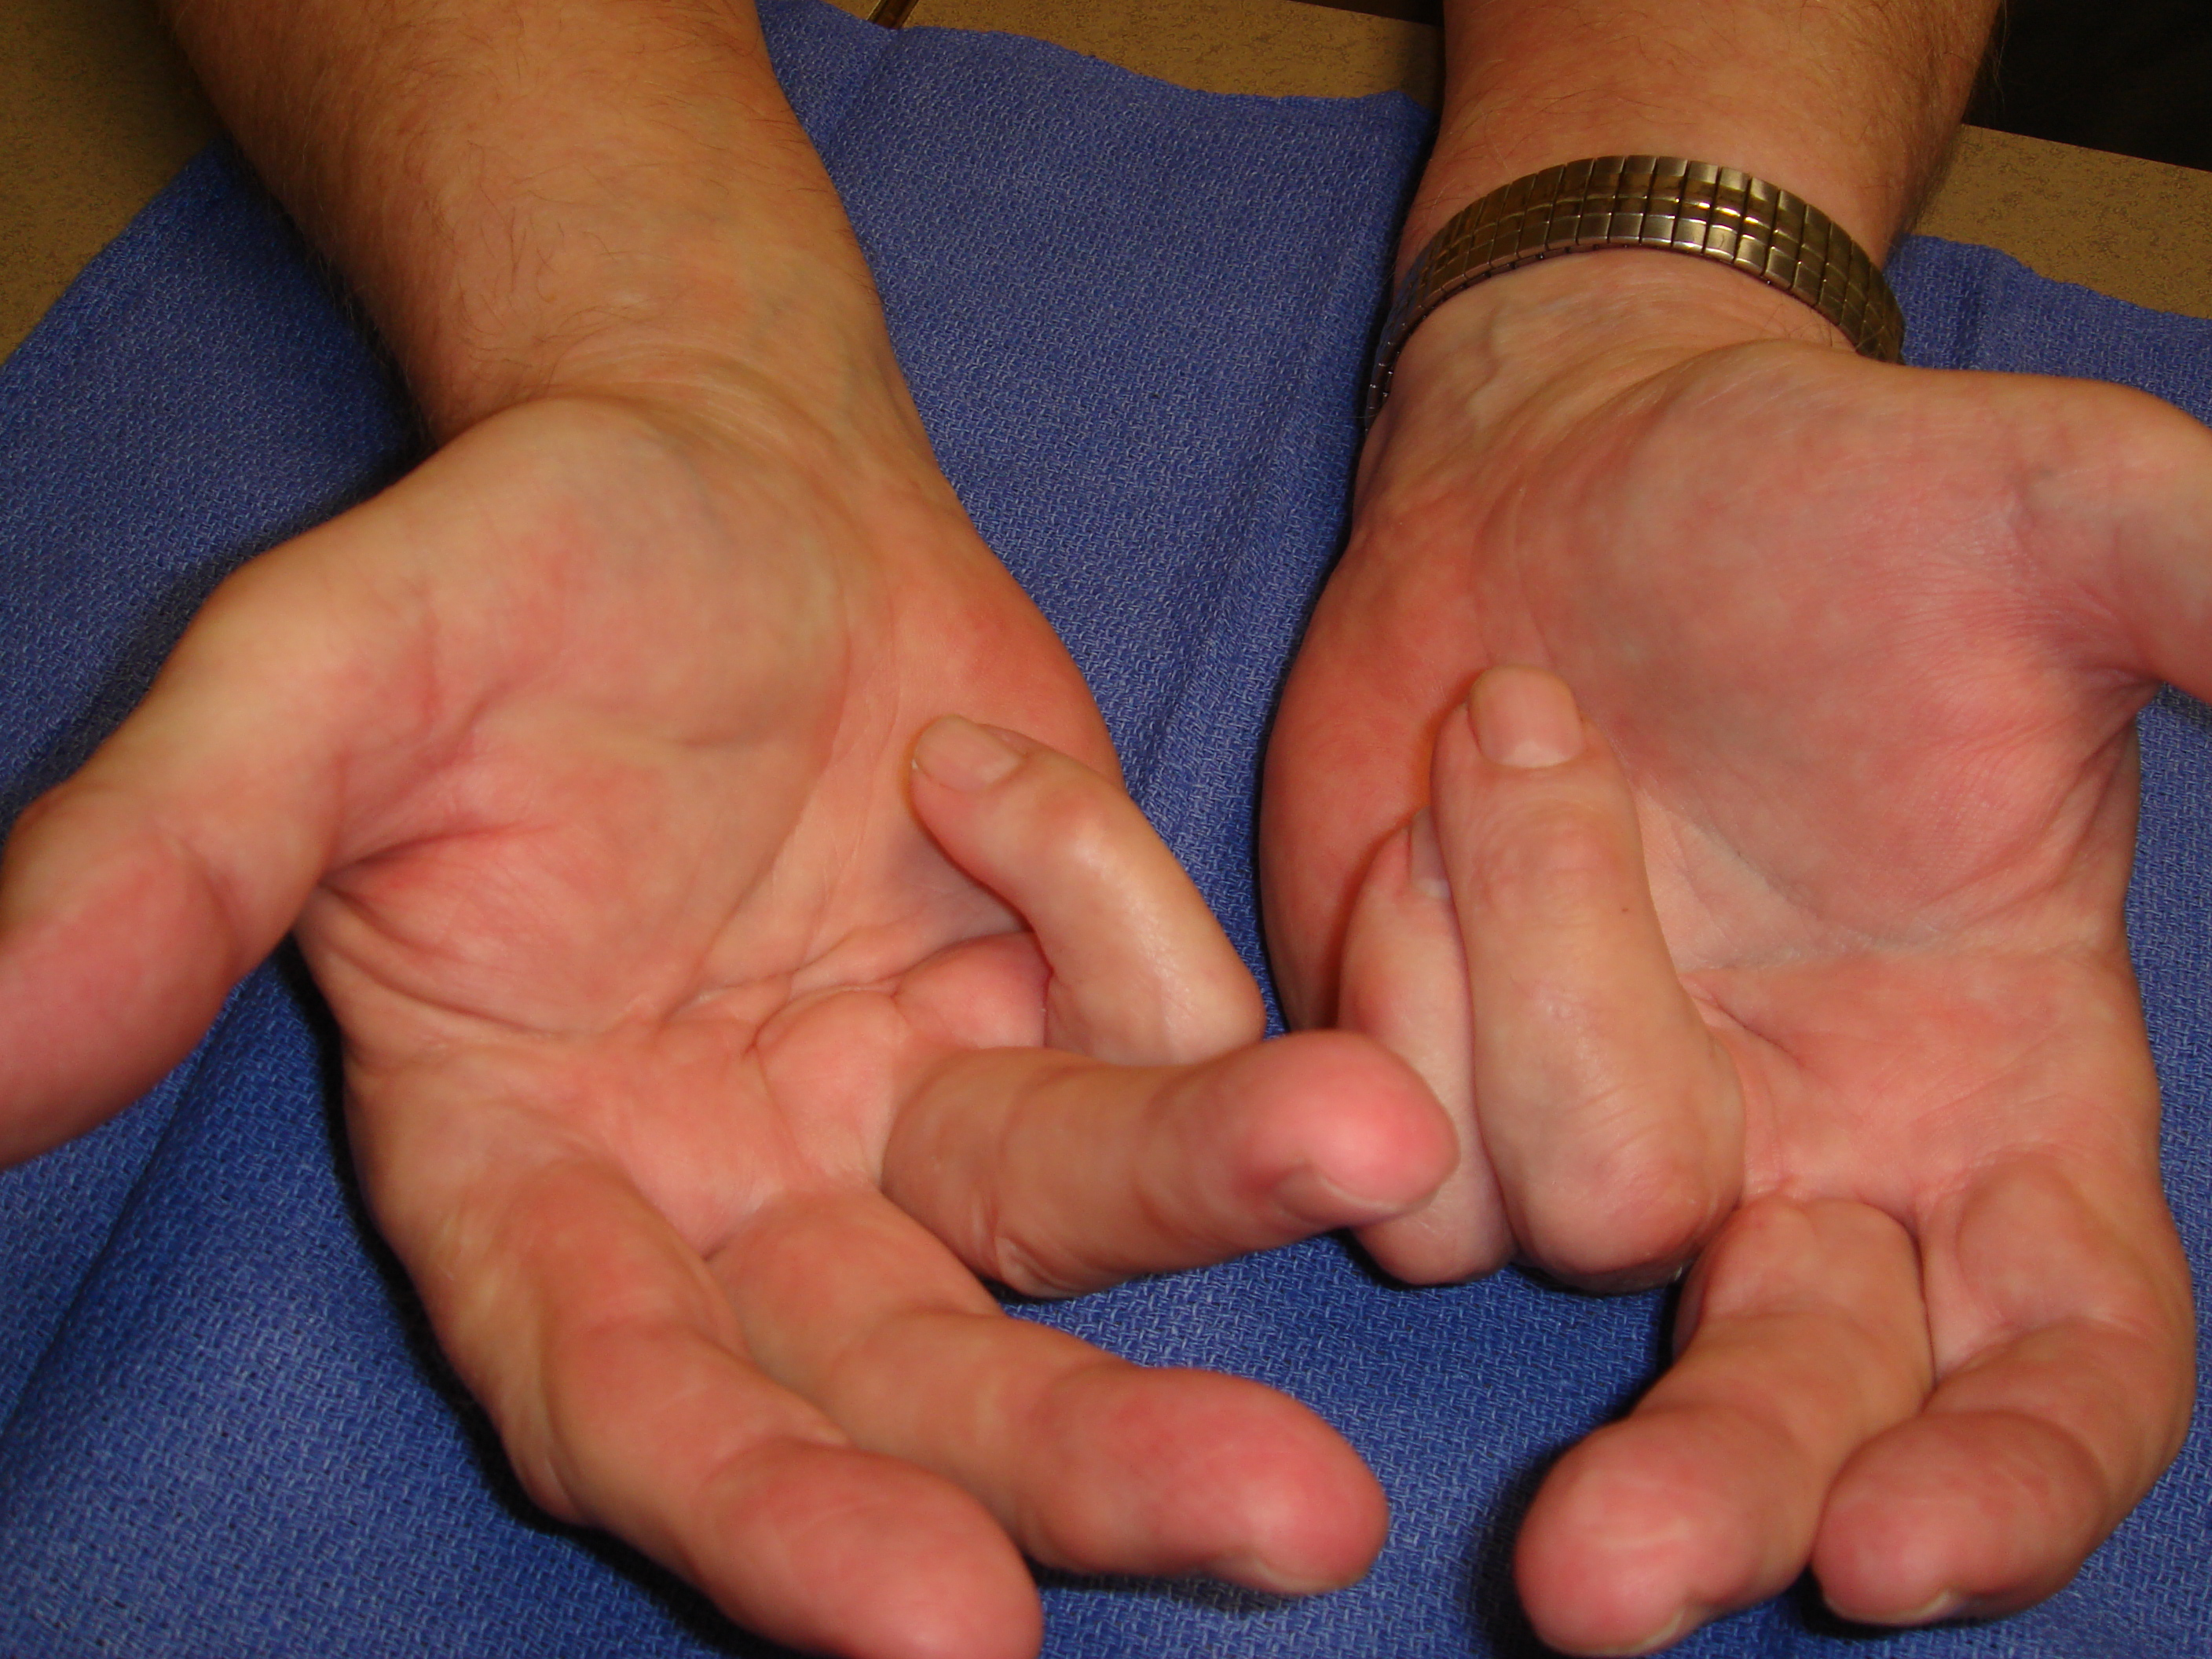 "Figure 7a: This 75-year-old man presented with bilateral fourth and fifth ray recurrences of Dupuytren's contractures 14 months after his second needle aponeurotomies in each hand. He had had the initial recurrences <9 months after the first procedures and recorded ""excellent"" corrections; the repeat needle aponeurotomies were also reported to have regained extension but also quickly recurred. He elected enzyme treatments beginning with his dominant right hand with the stated goal of being able to ""hold my wife's hand"" again."